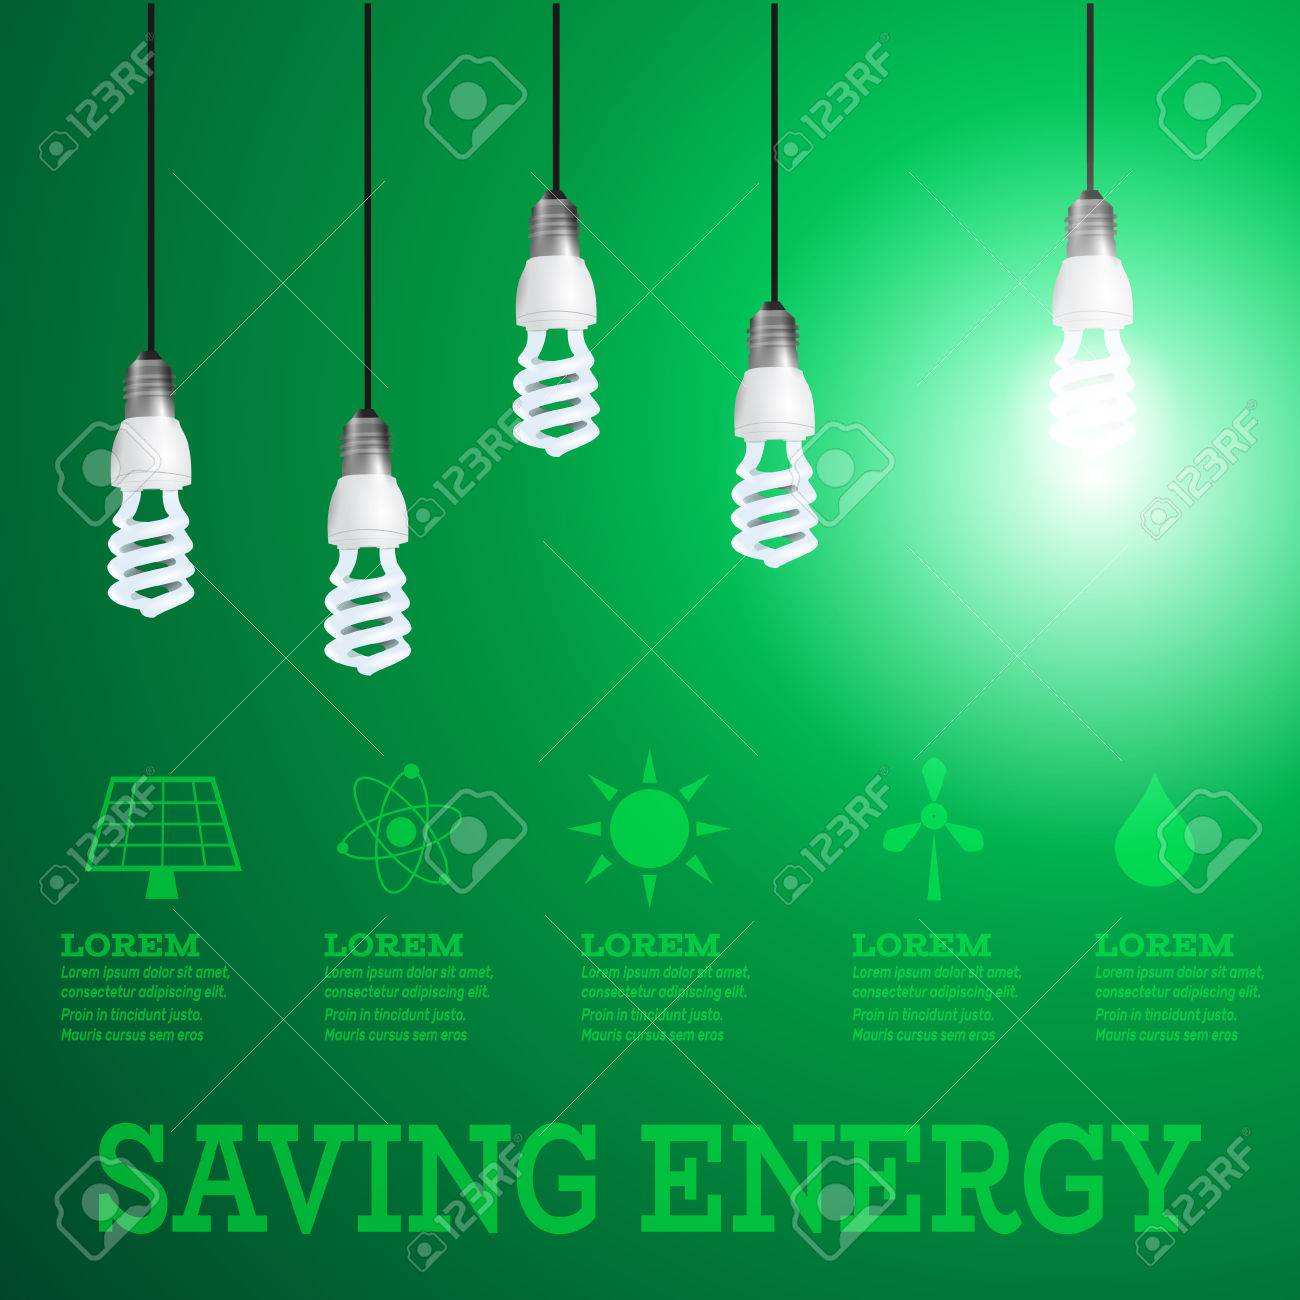 Renewable Energy Infographiclightbulbs On Wires With Alternative Wiring A Light Fixture Green Wire Lightbulbs Resources Stock Vector 68191929